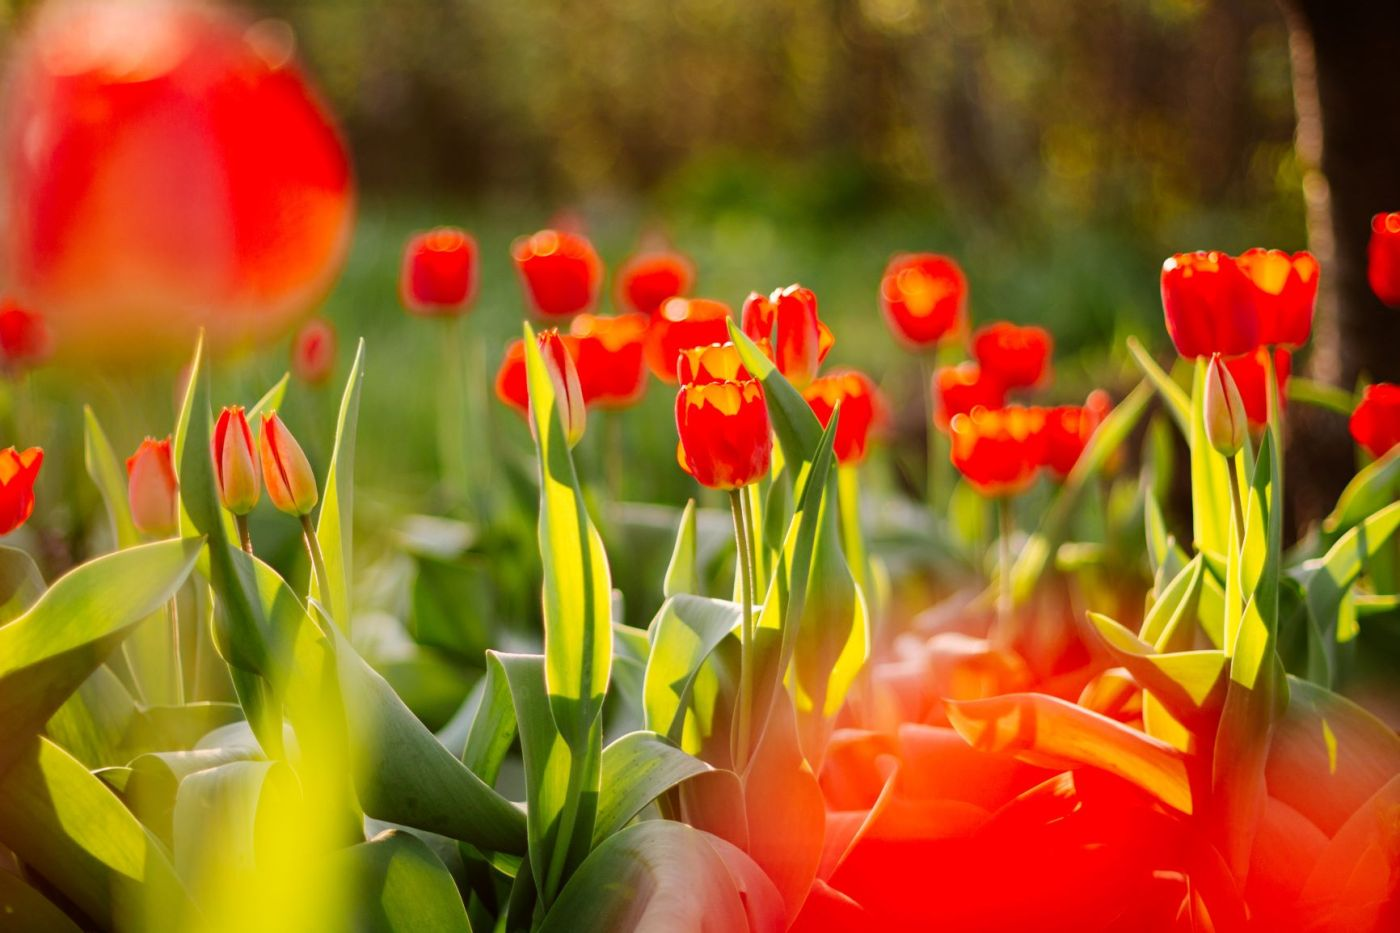 red tulips with sunlight coming through leaves